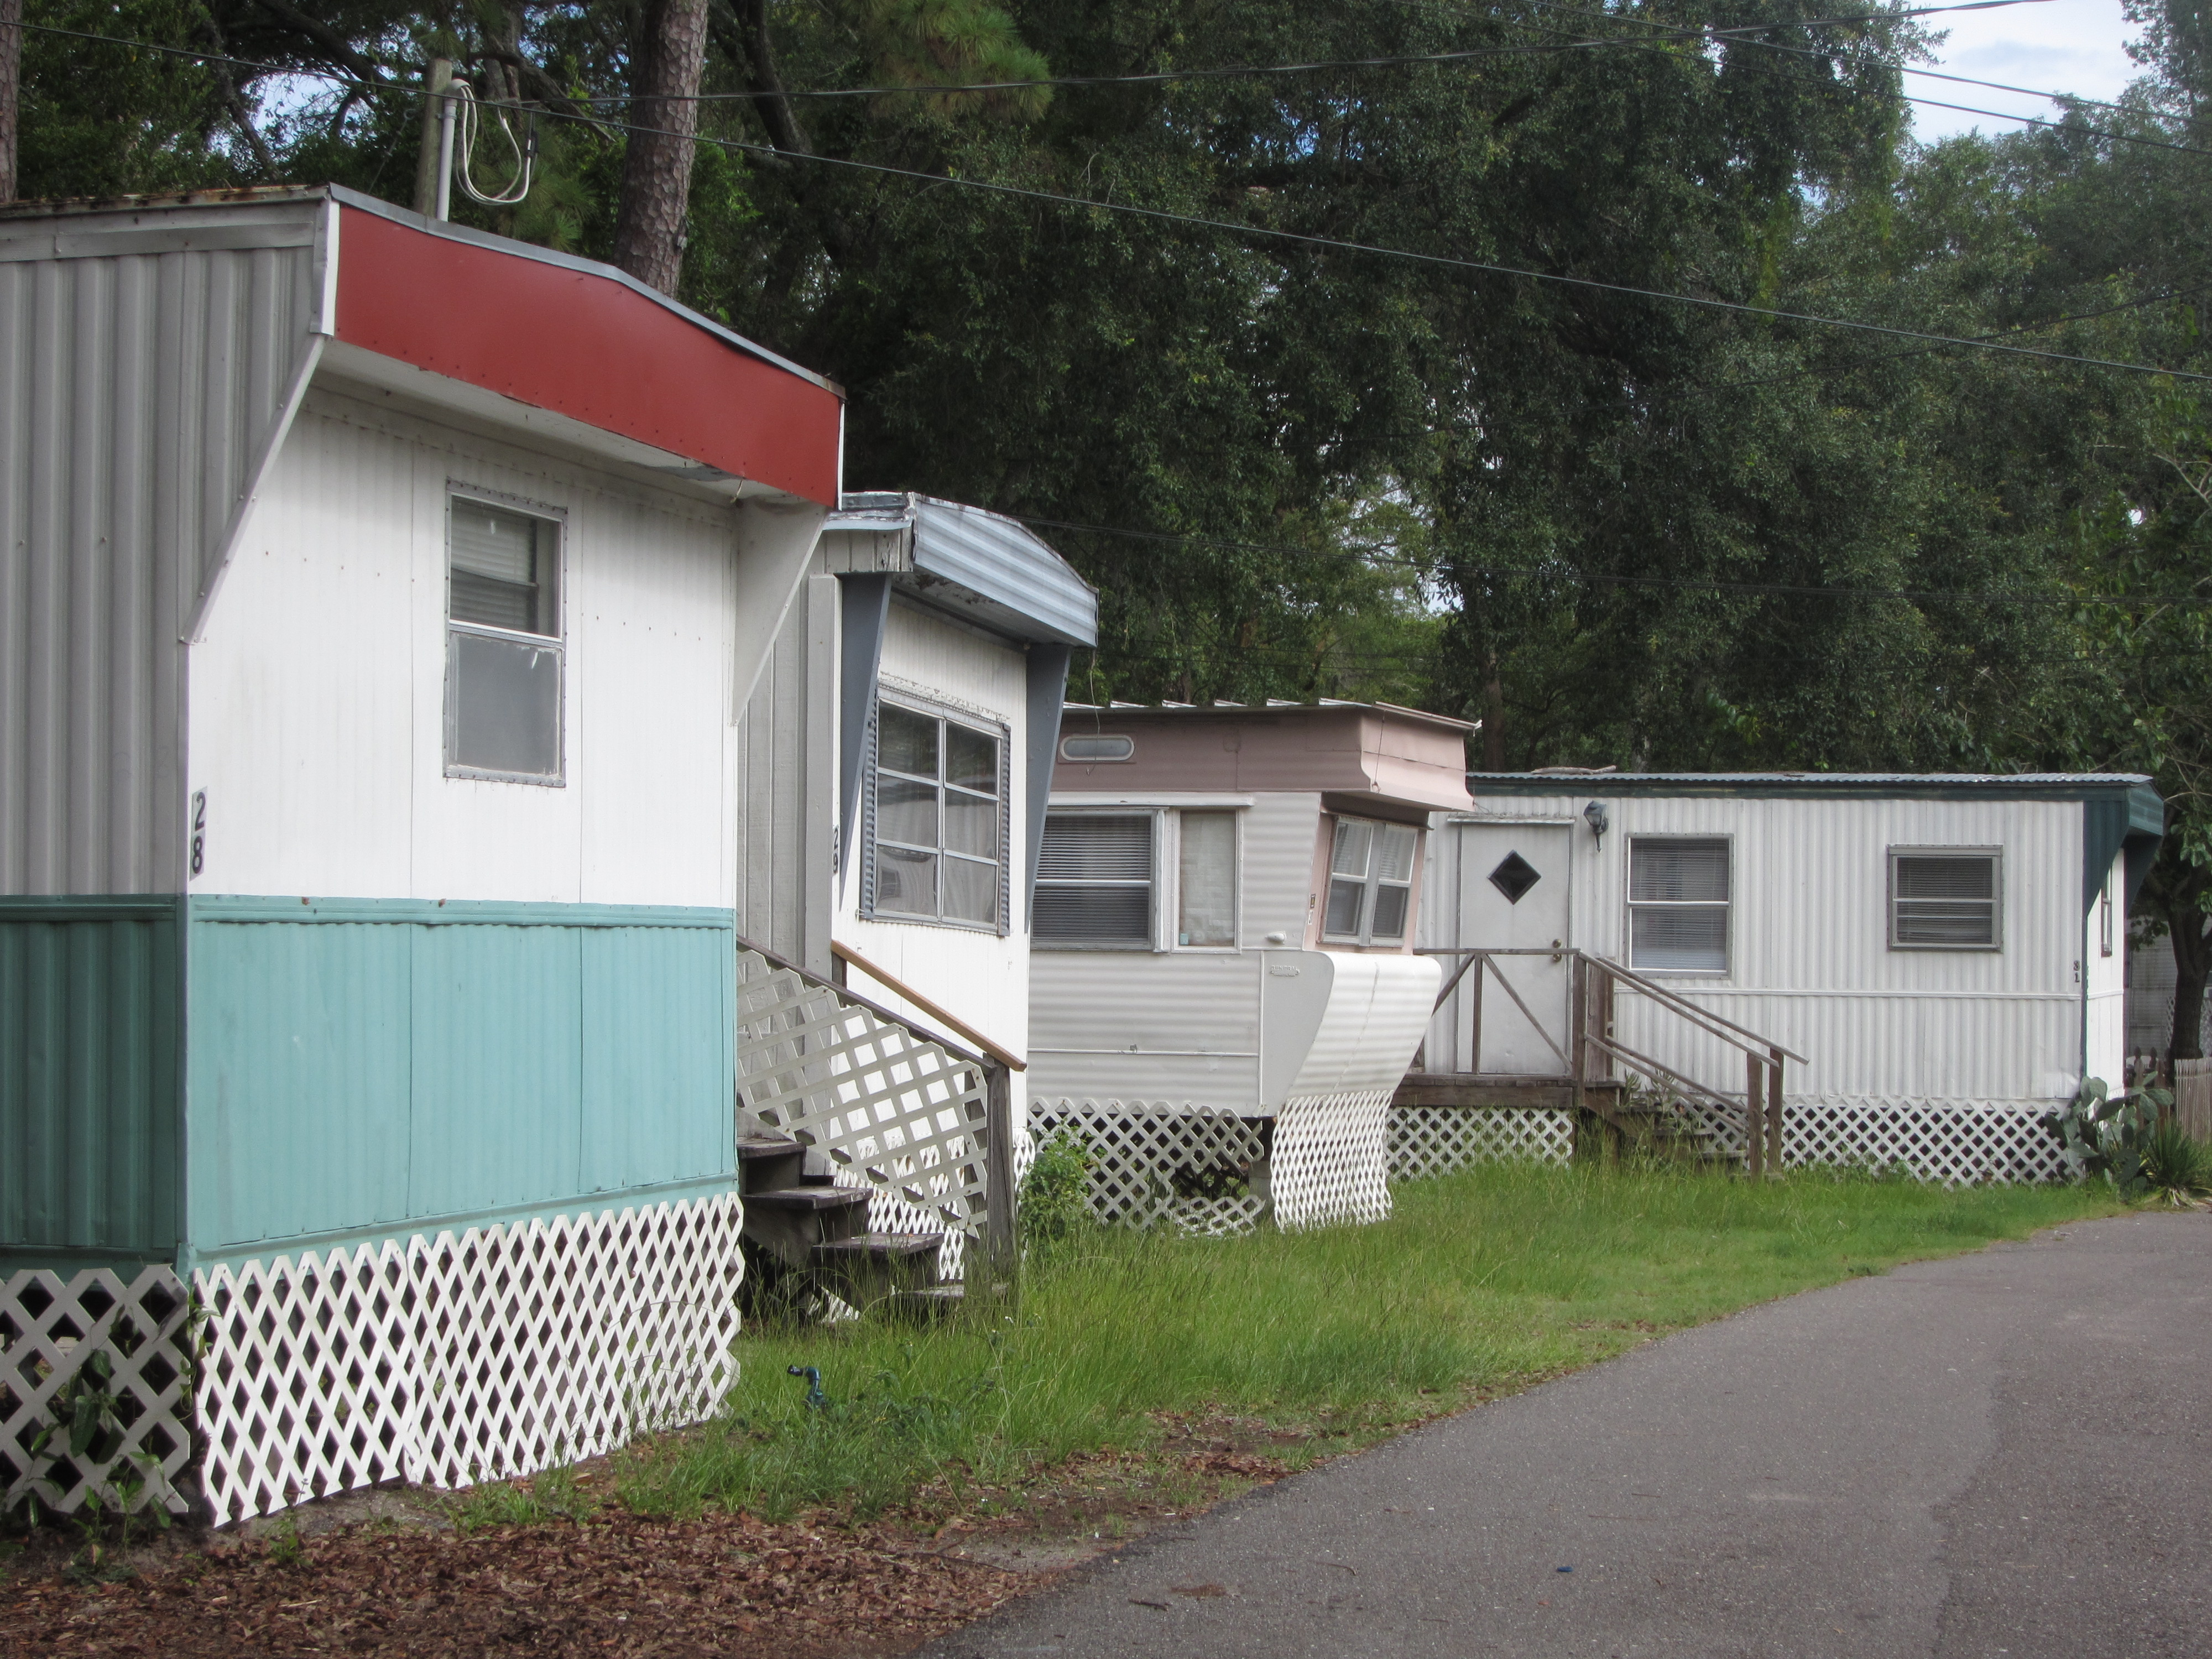 Trailer Parks | jaxpsychogeo on mhvillage colorado springs colorado, mobile home trailer frame, manufactured homes colorado,